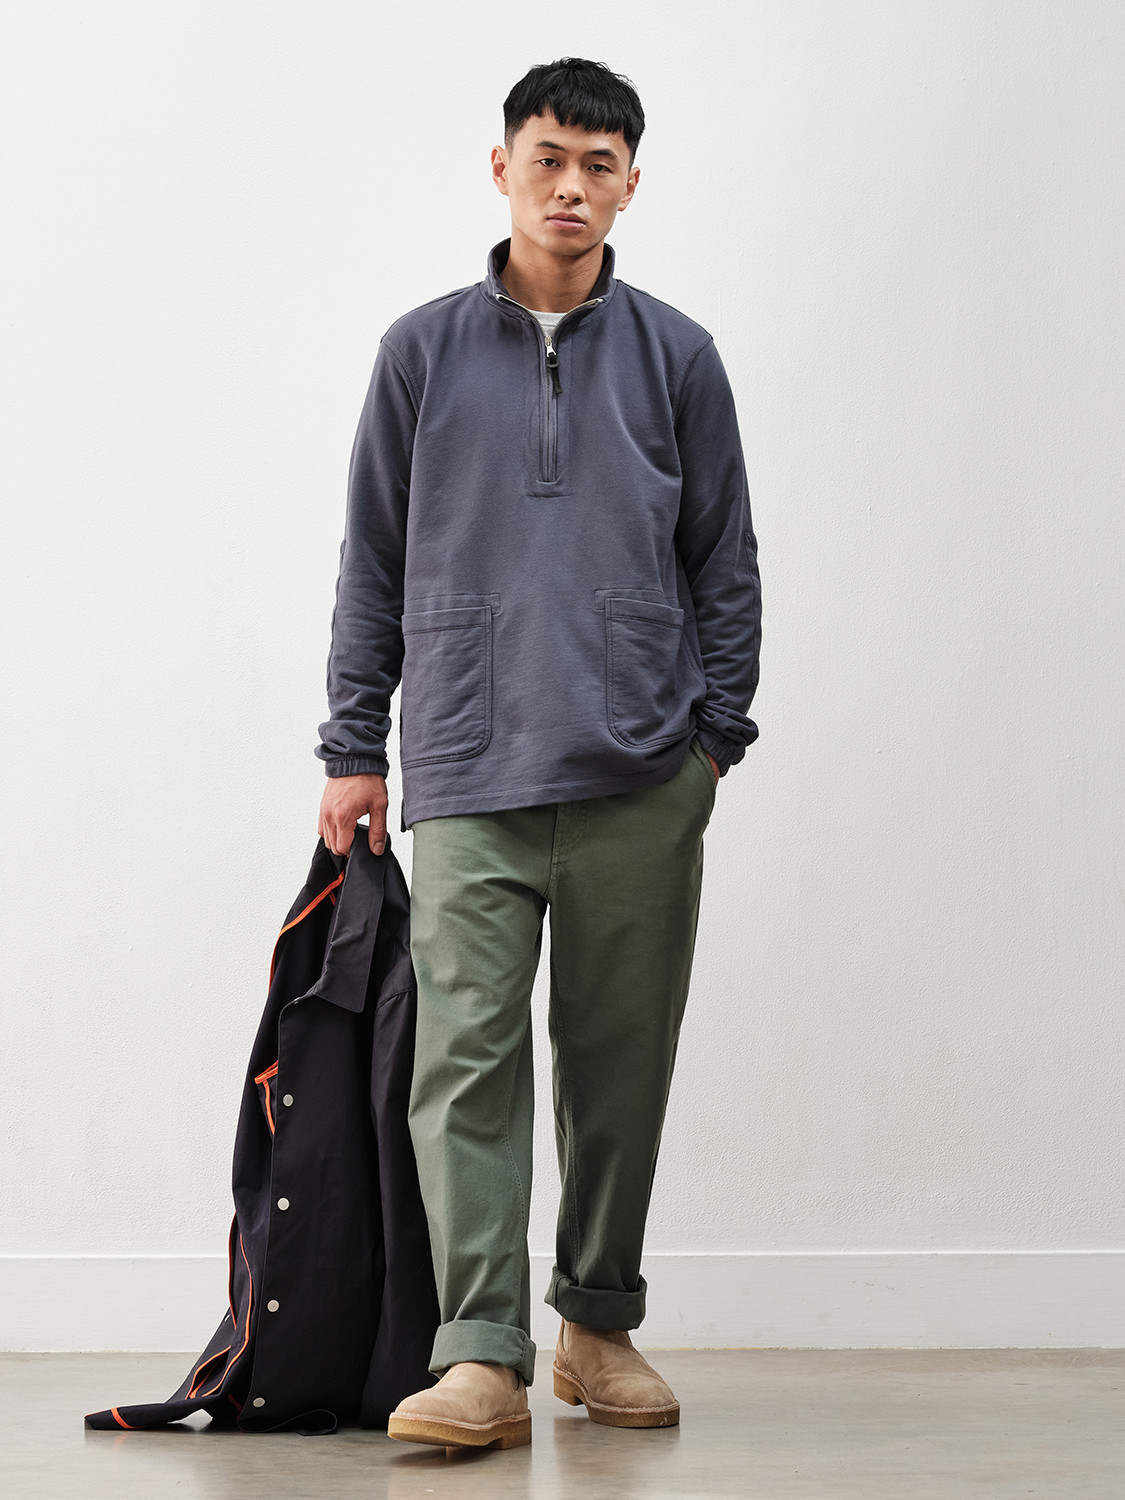 Men's outfit idea for 2021 with navy trench coat, white crew neck t-shirt, colored chinos, neutral chelsea boots. Suitable for spring and fall.